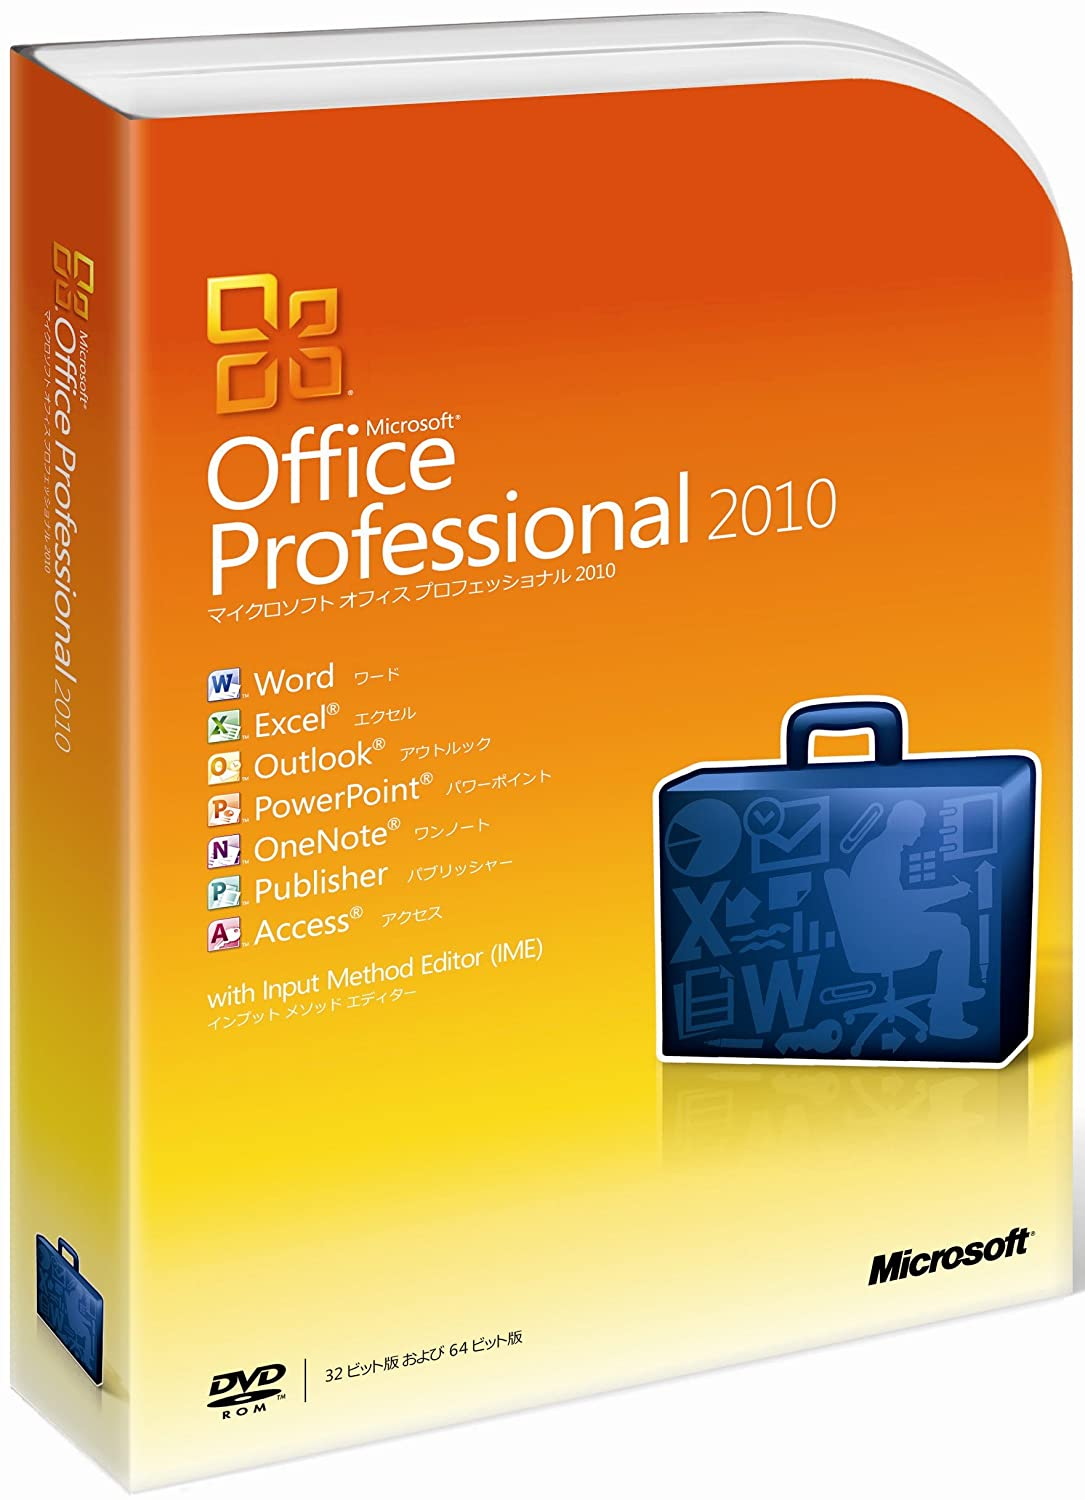 【旧商品】Microsoft Office Professional 2010 通常版 [パッケージ] B003FZABW4 Parent